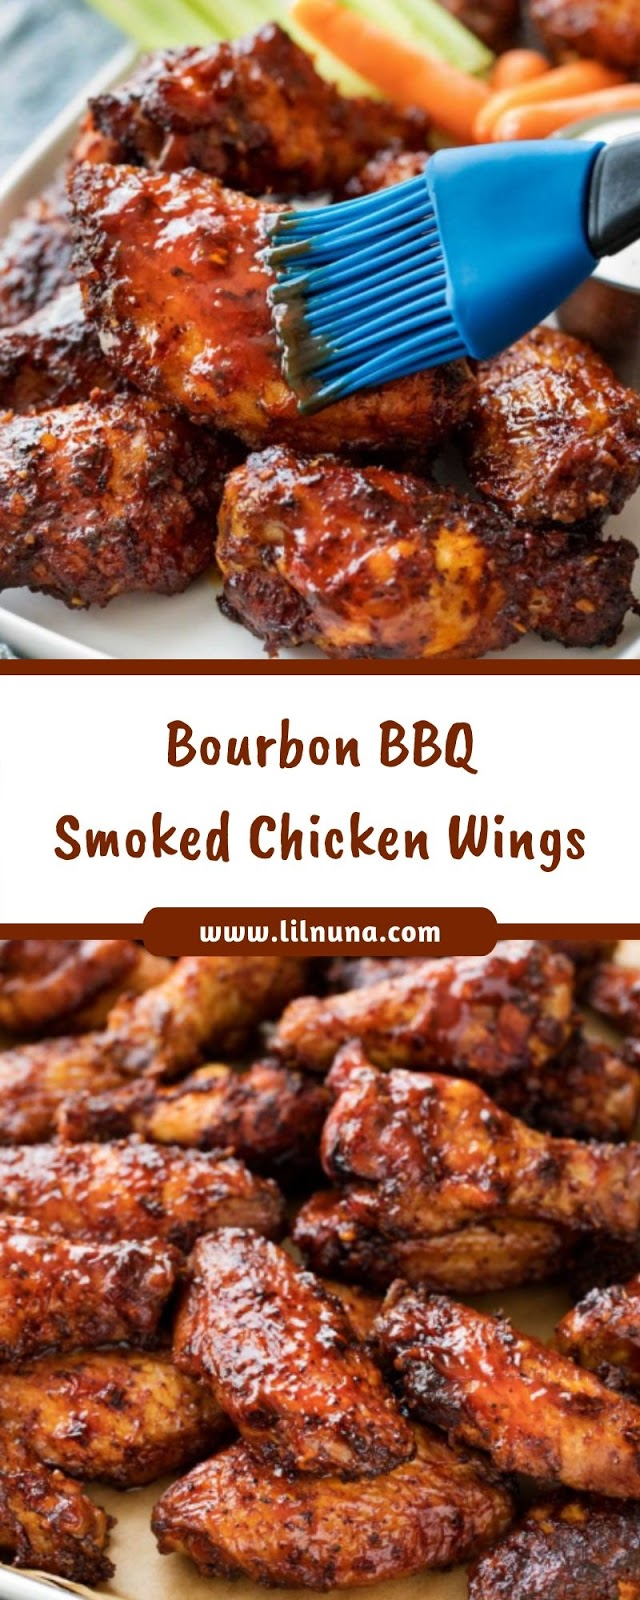 Bourbon BBQ Smoked Chicken Wings